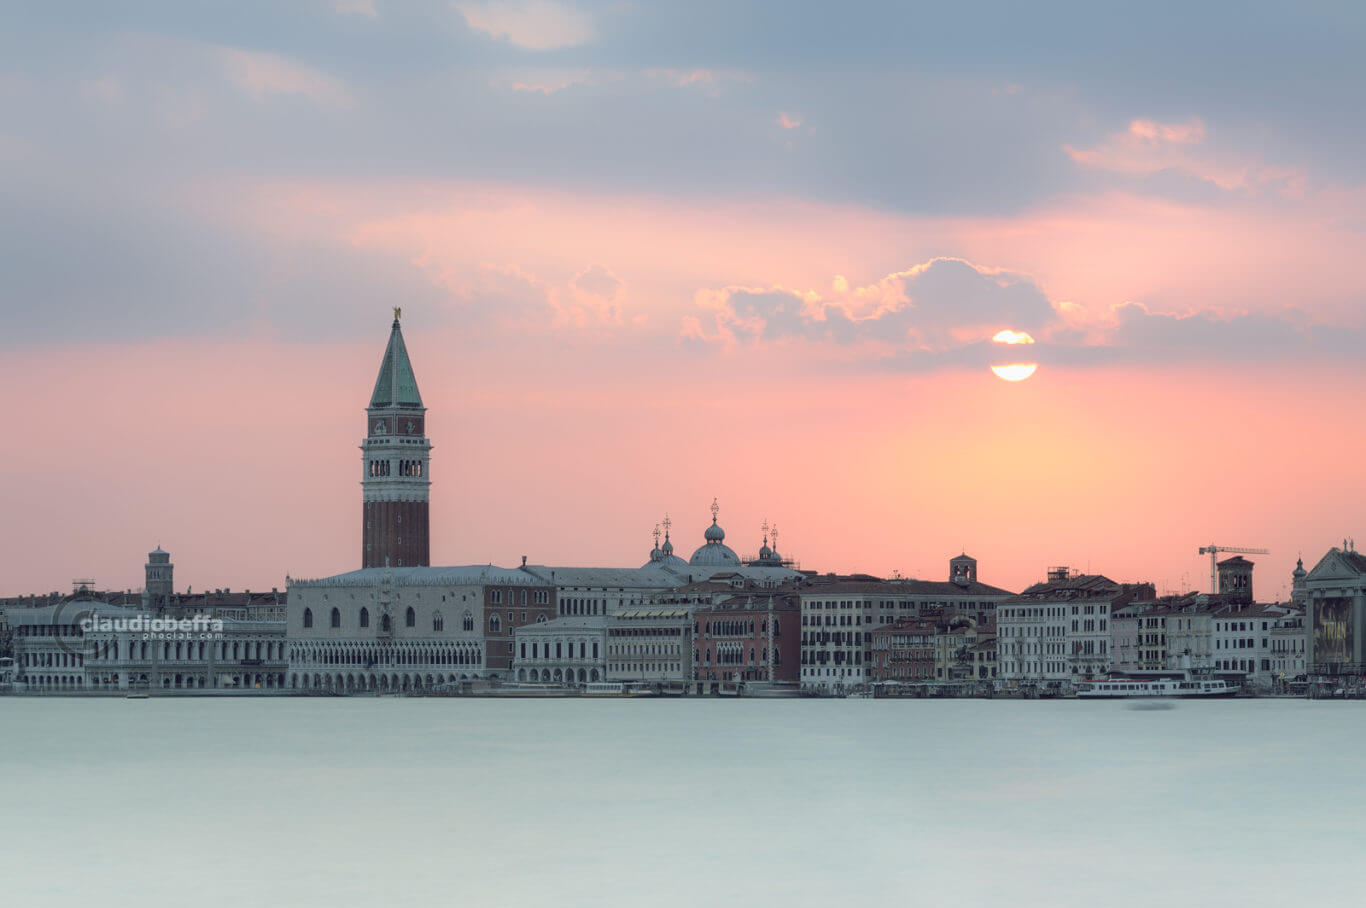 Sunset, Pastel sunset, Venice, Venezia, Italia, San Marco, Riva degli Schiavoni, Lagoon, Water, Reflections, Bursts of light, Pastel, Colors